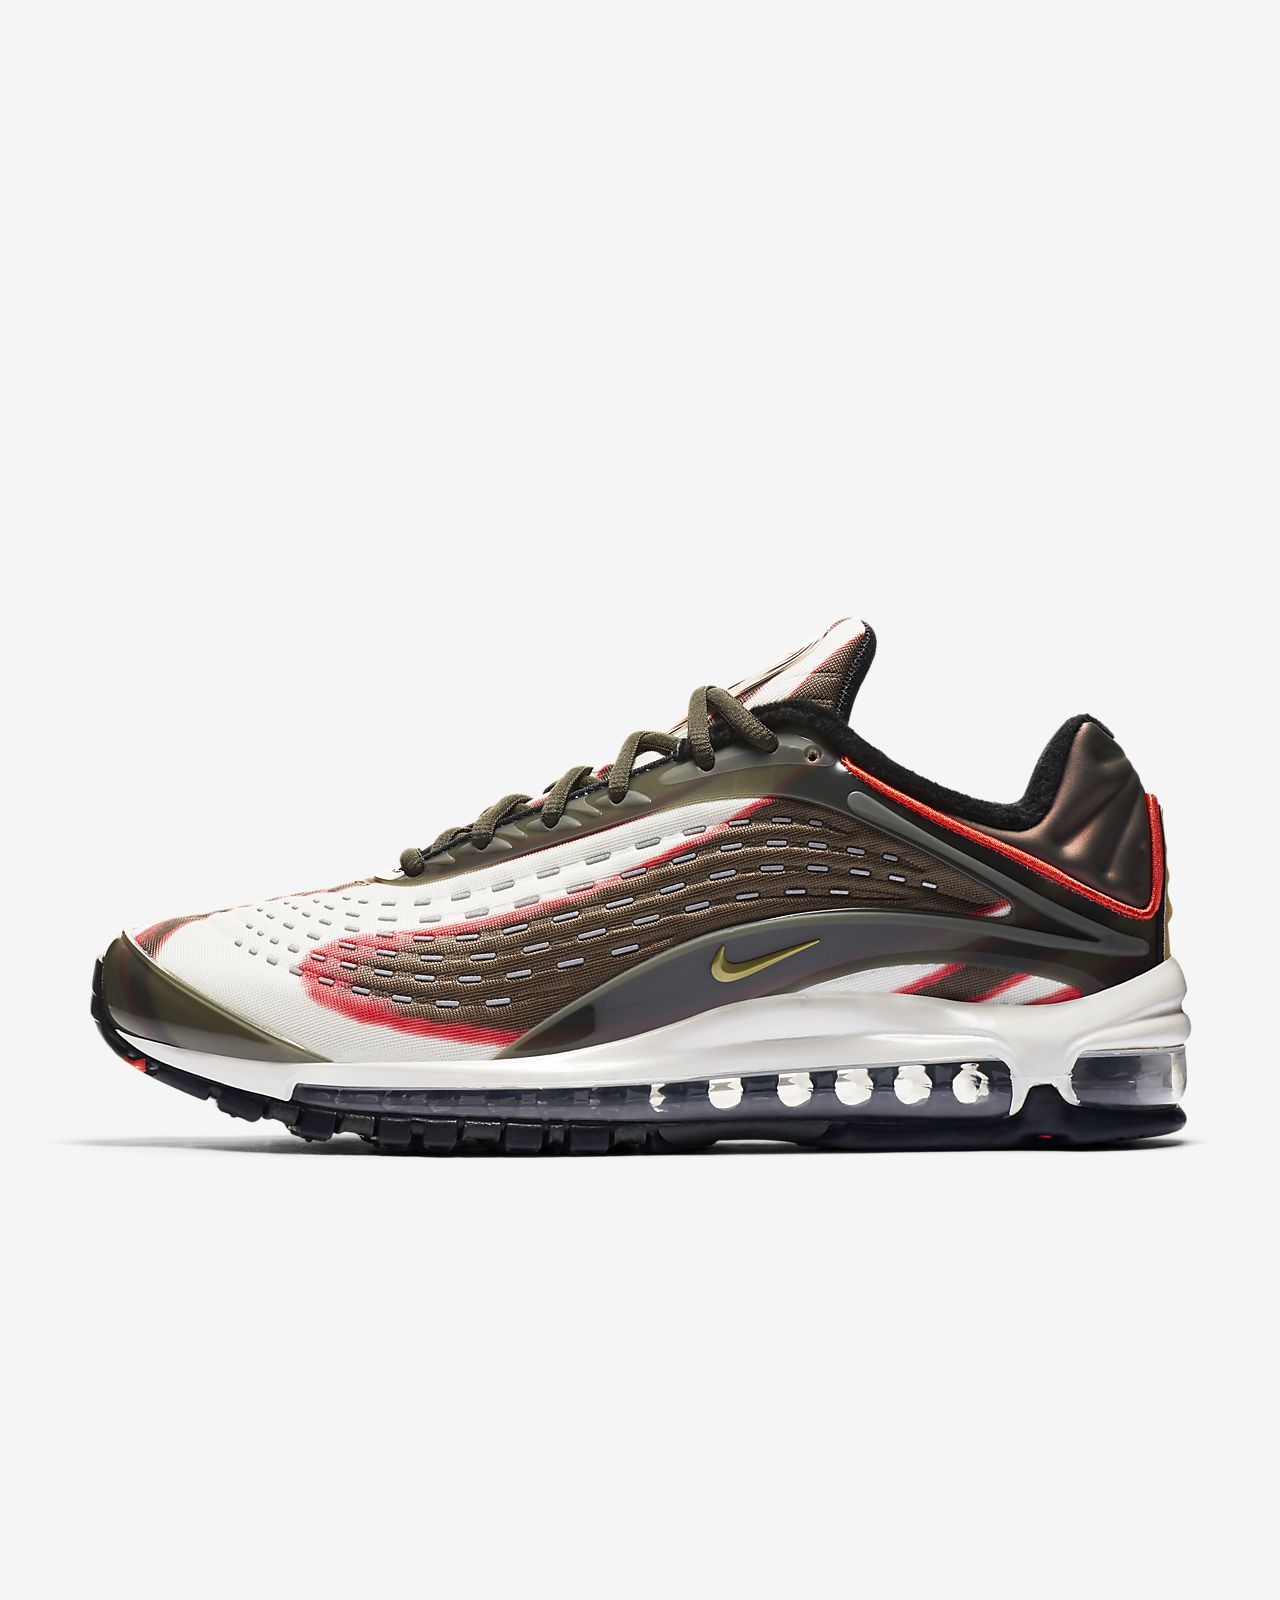 separation shoes 616b8 02e65 Nike Air Max Deluxe